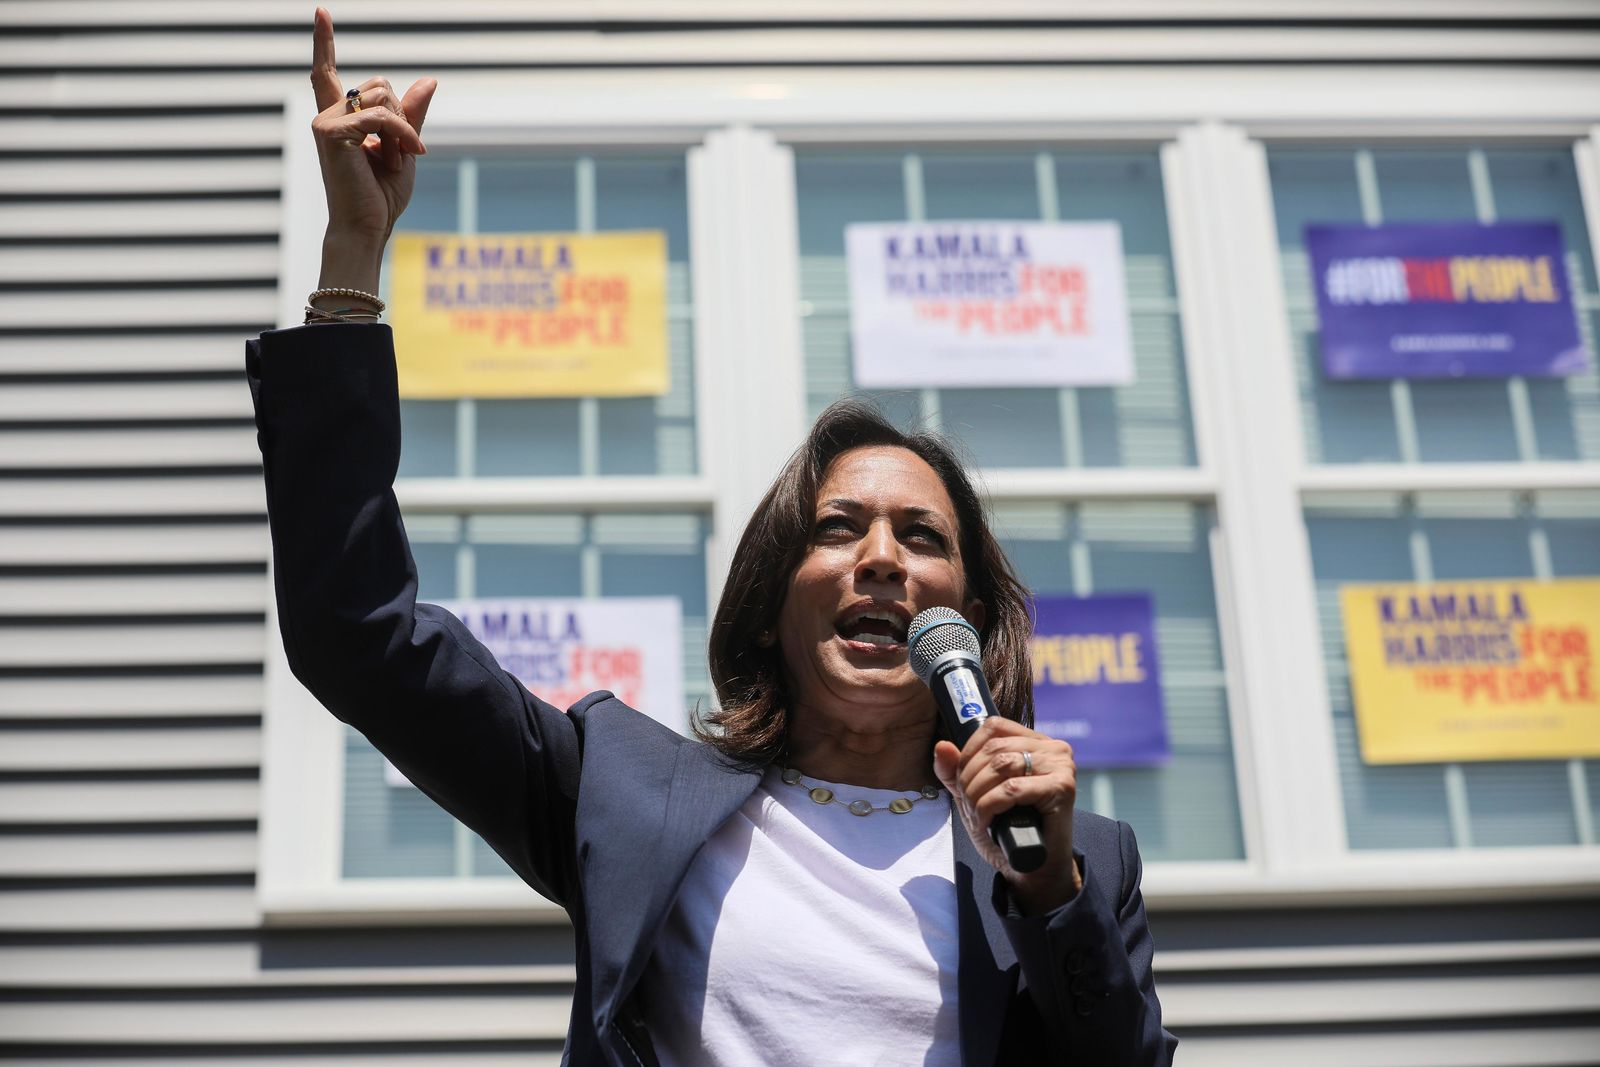 Supporters applaud as Democratic presidential candidate, U.S. Sen. Kamala Harris, D-Calif., gestures while speaking at a house party in Gilford, N.H., Sunday, July 14, 2019. (AP Photo/ Cheryl Senter)